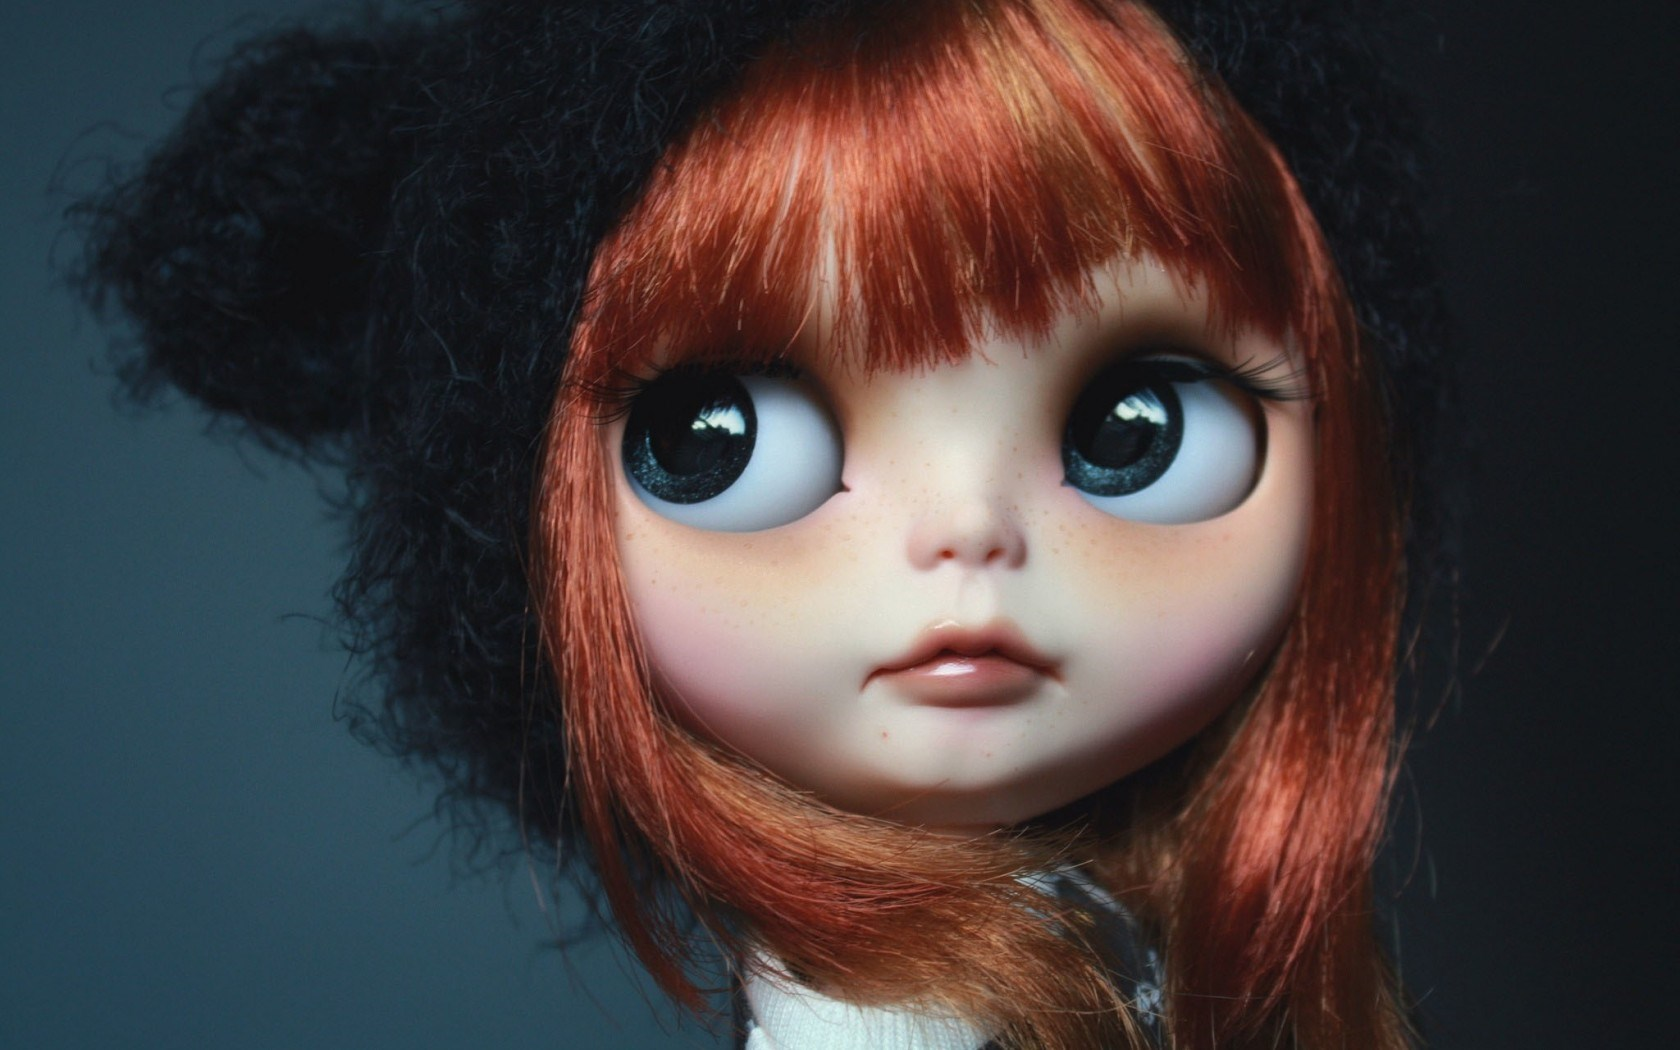 Toy Doll Red Hair Wallpaper